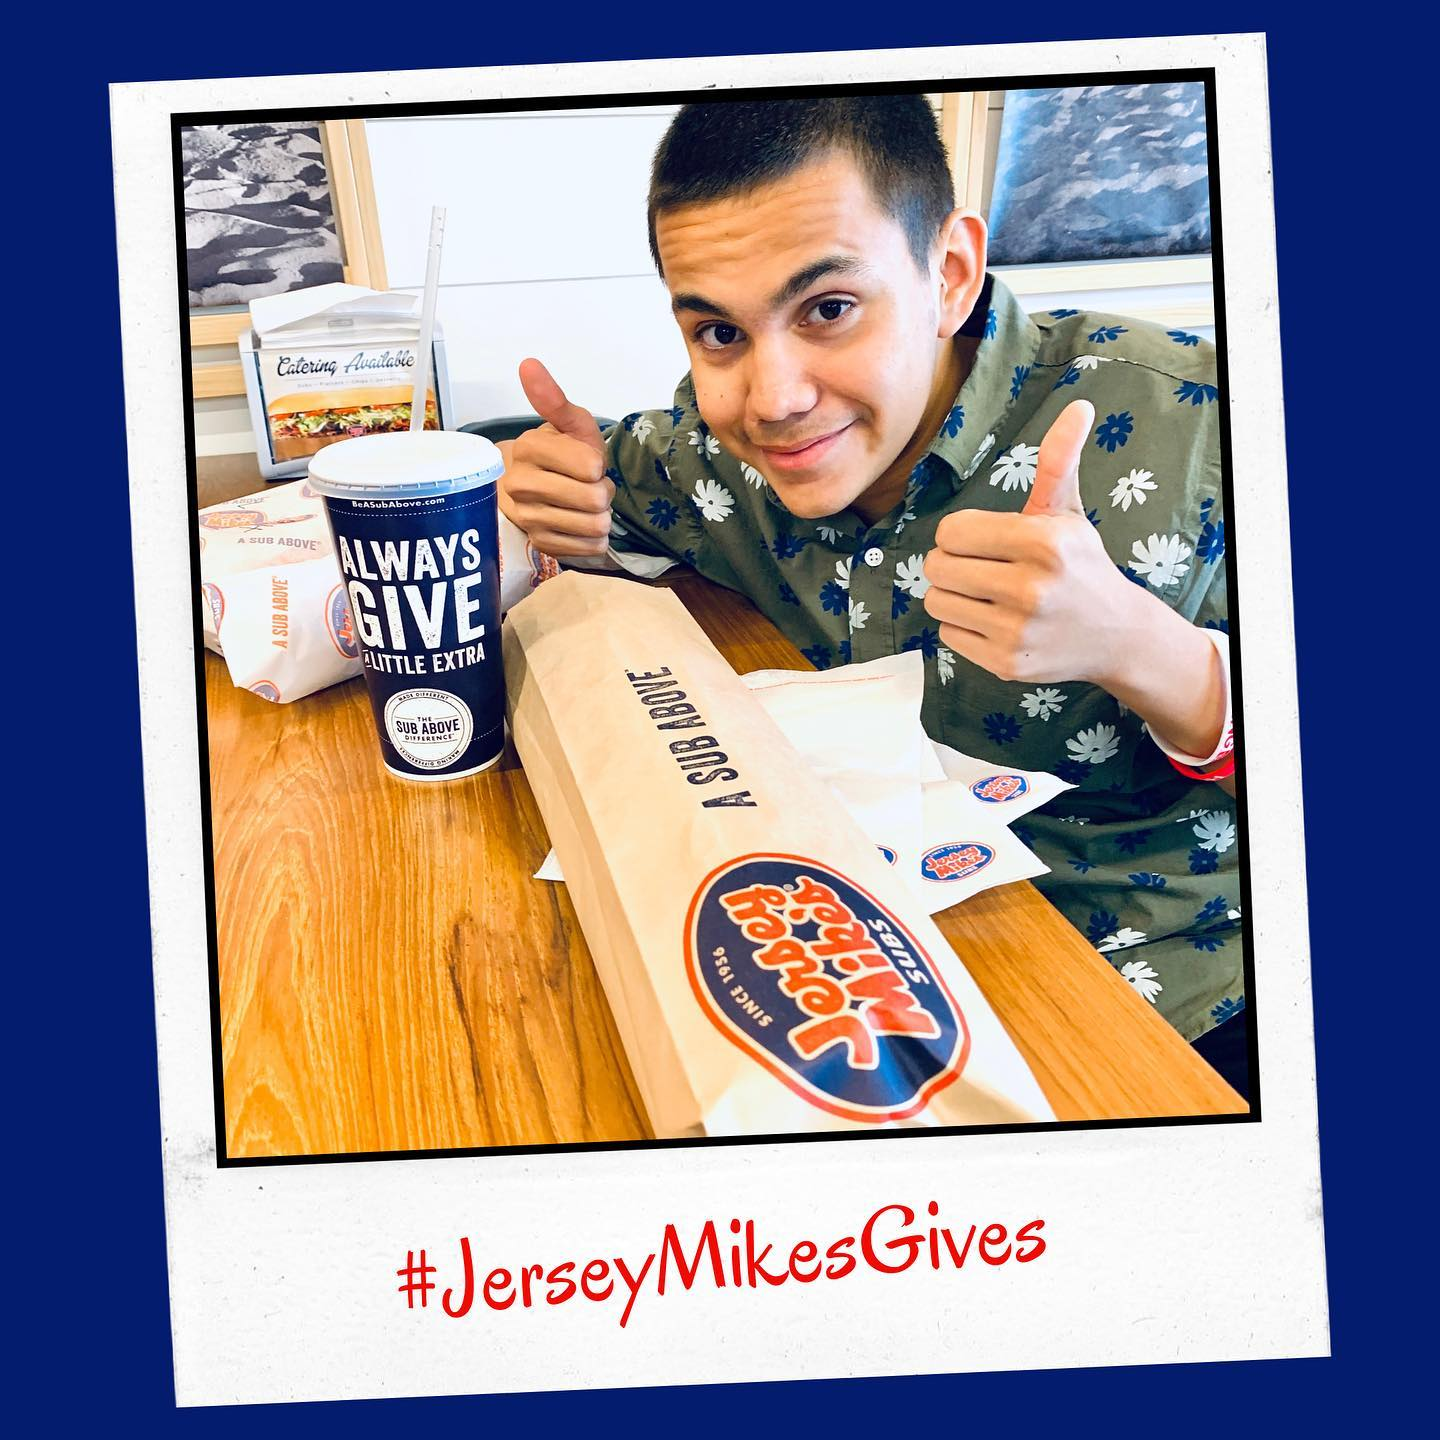 Jersey MIke's in Laveen joins others in fundraising for Phoenix Children's Hospital.